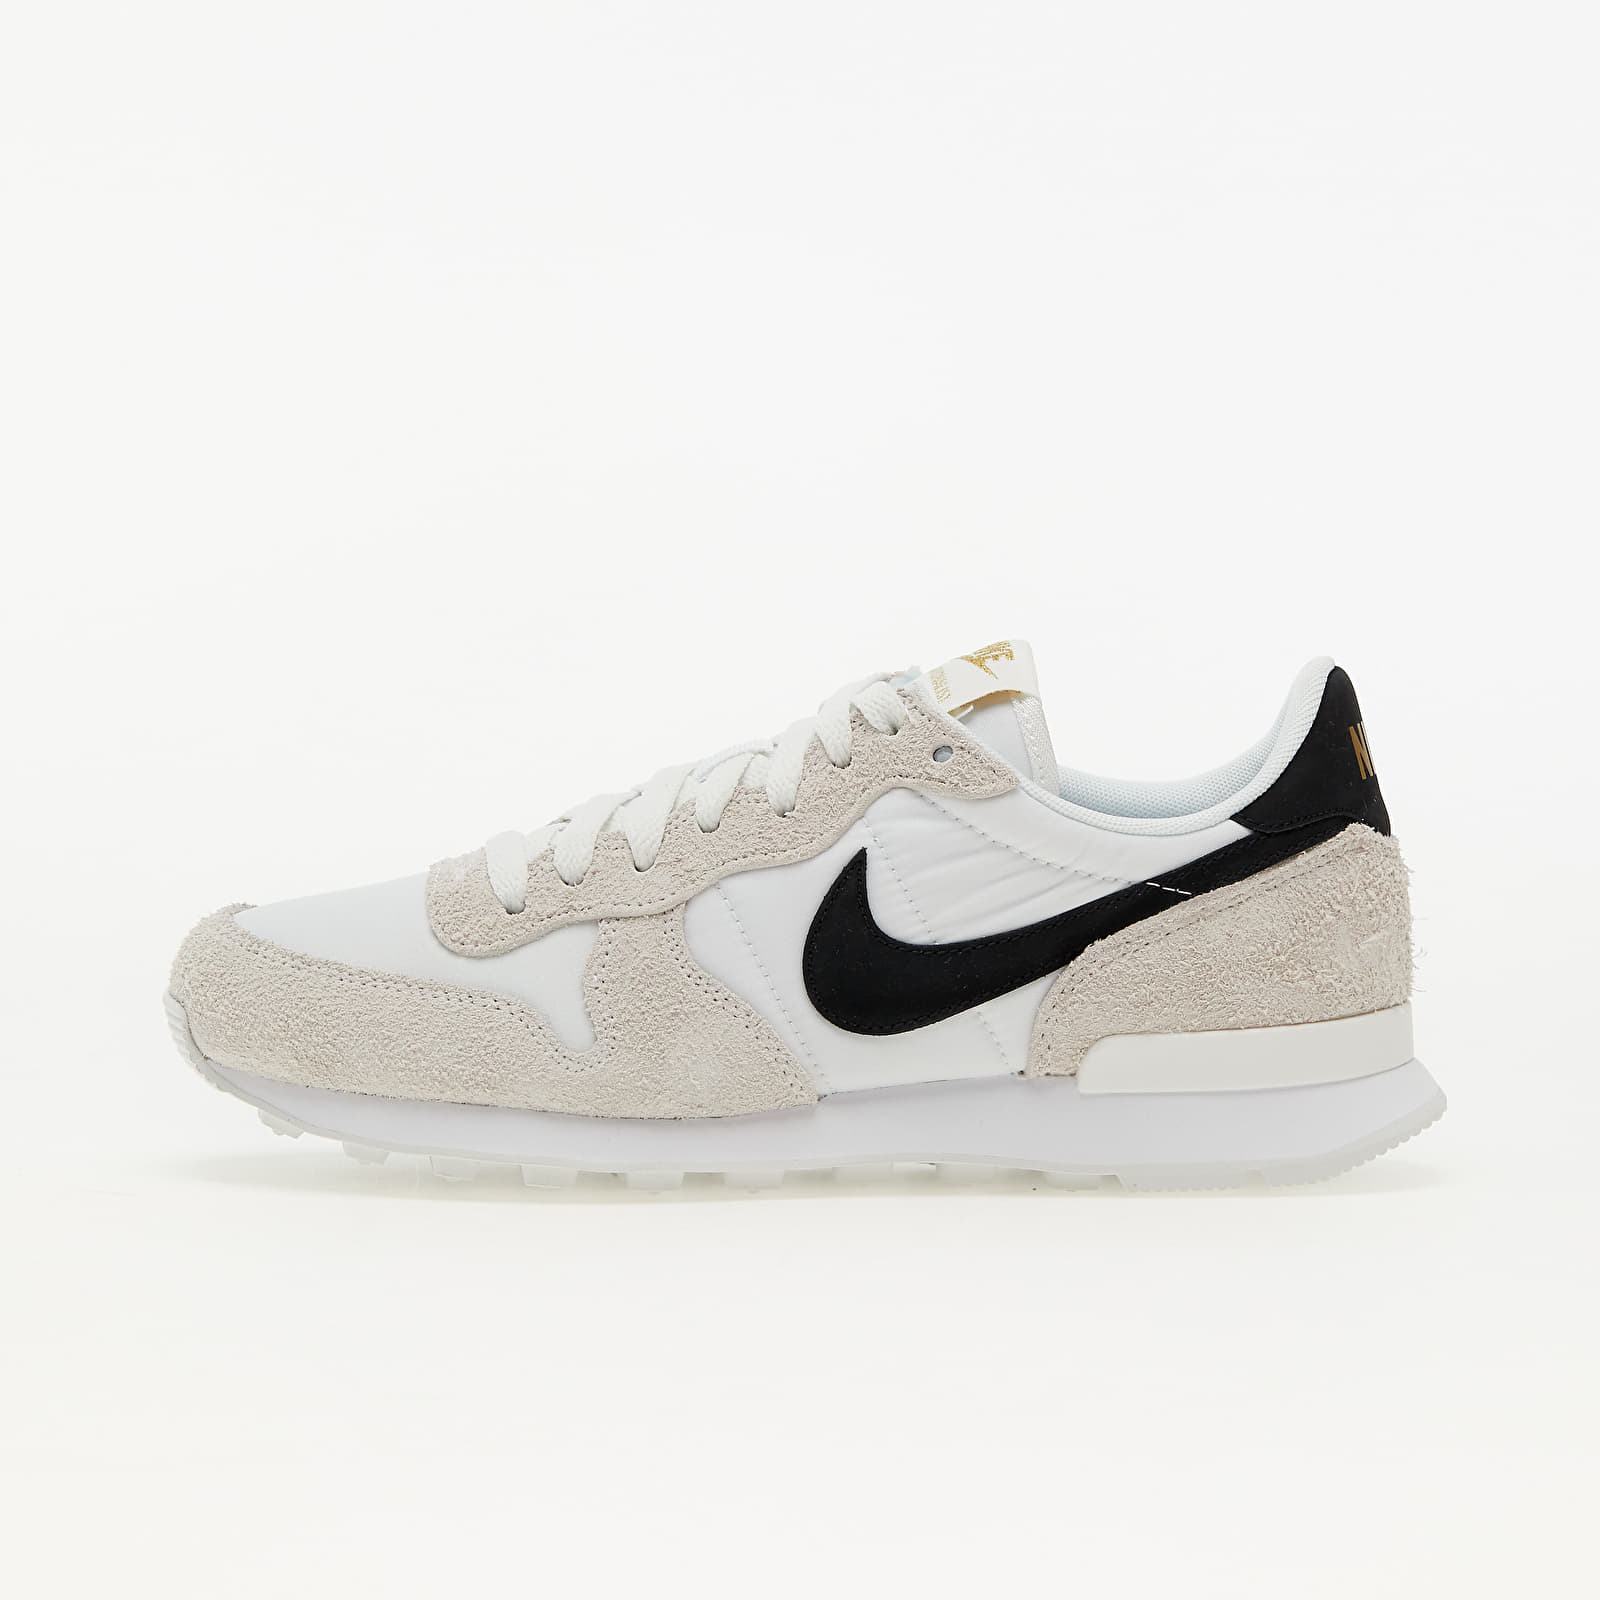 Nike W Internationalist Summit White/ Black-Metallic Gold-White EUR 38.5